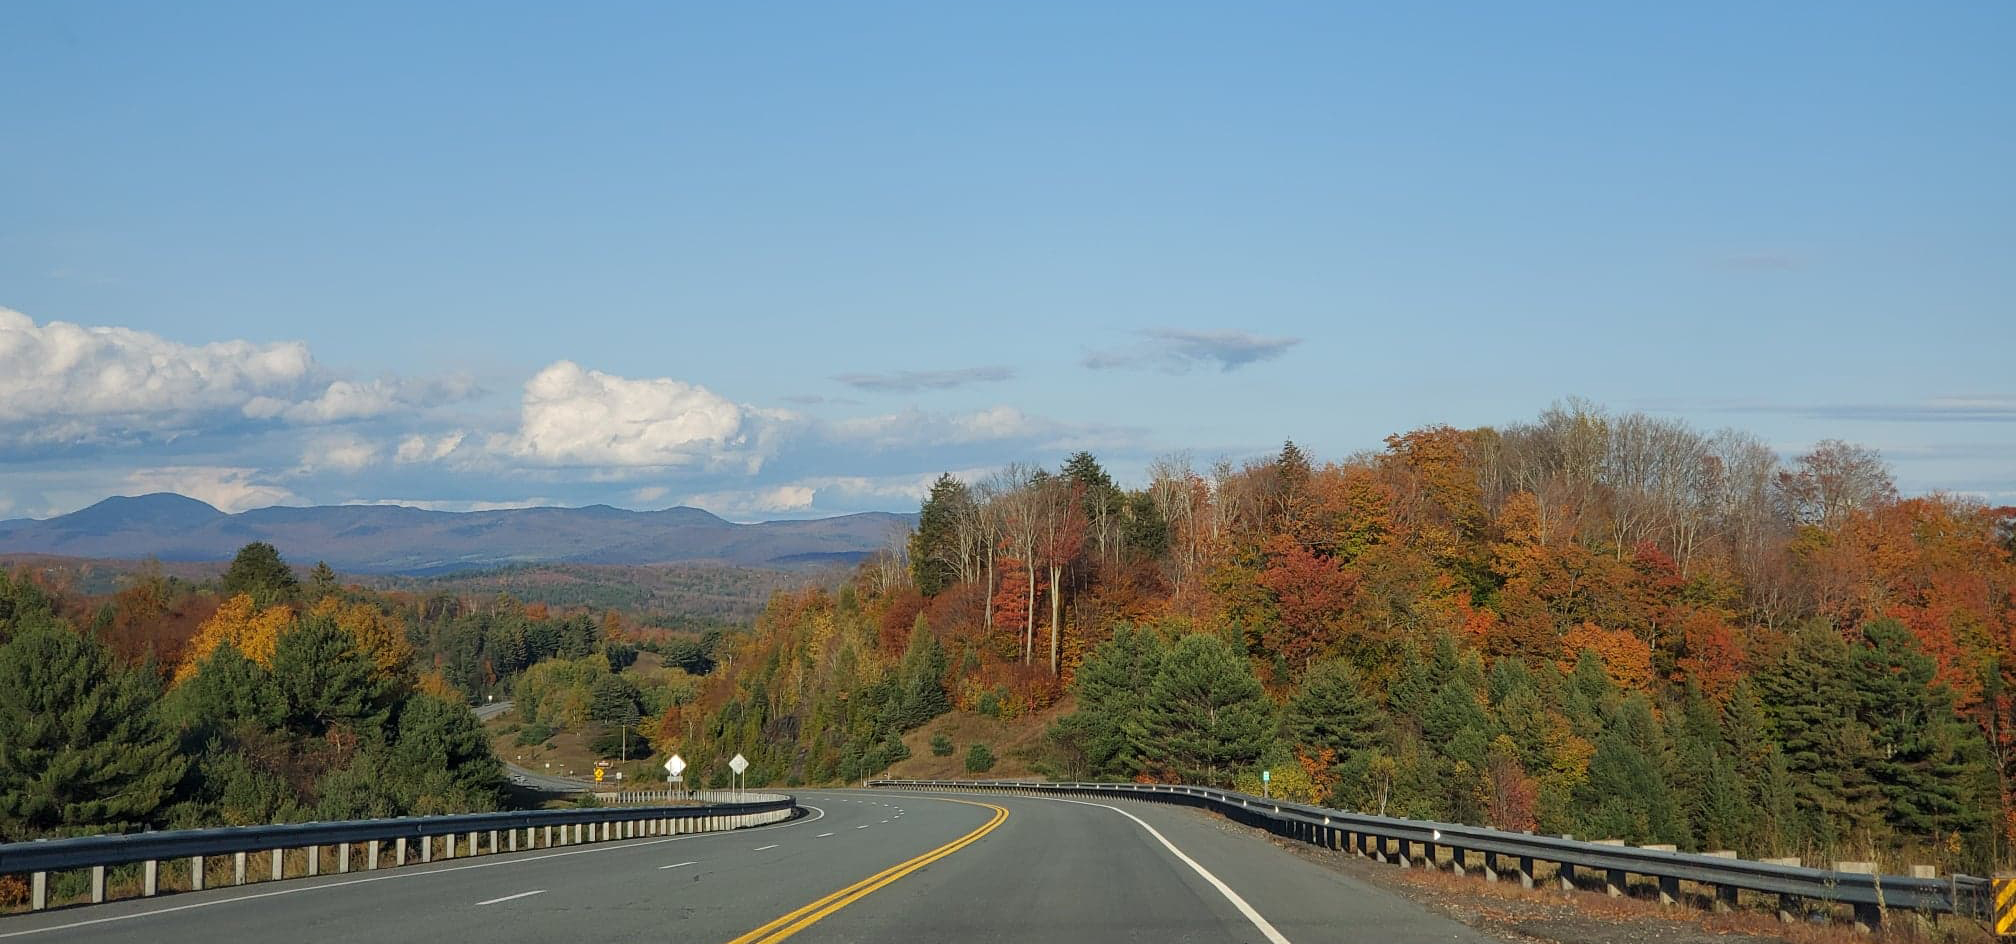 Foliage near Danville, VT by Renée-Marie Smith - 10-04-2020